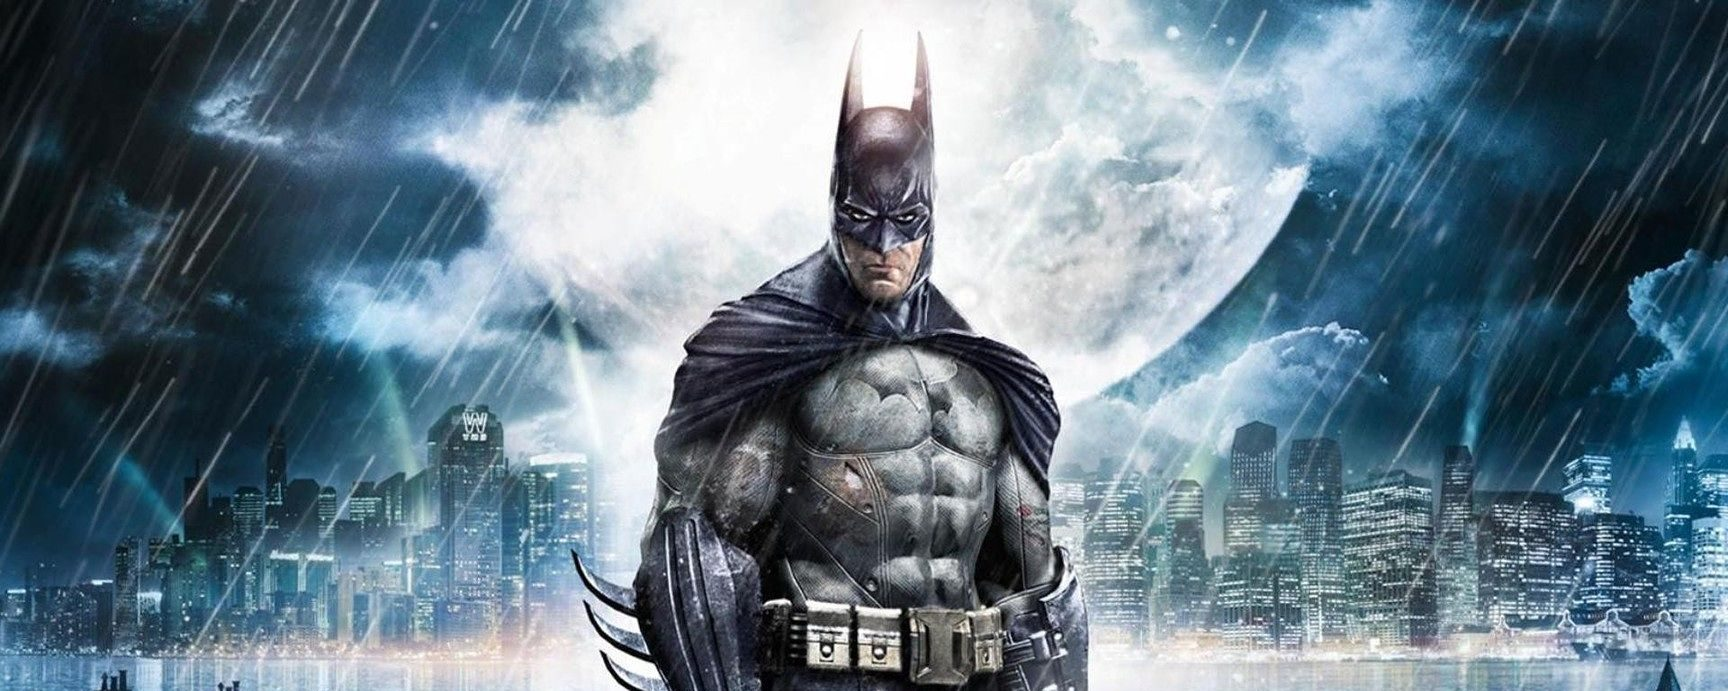 batman-arkham-asylum-gets-an-honest-trailer-and-it-sure-is-awesome-jpeg-276547